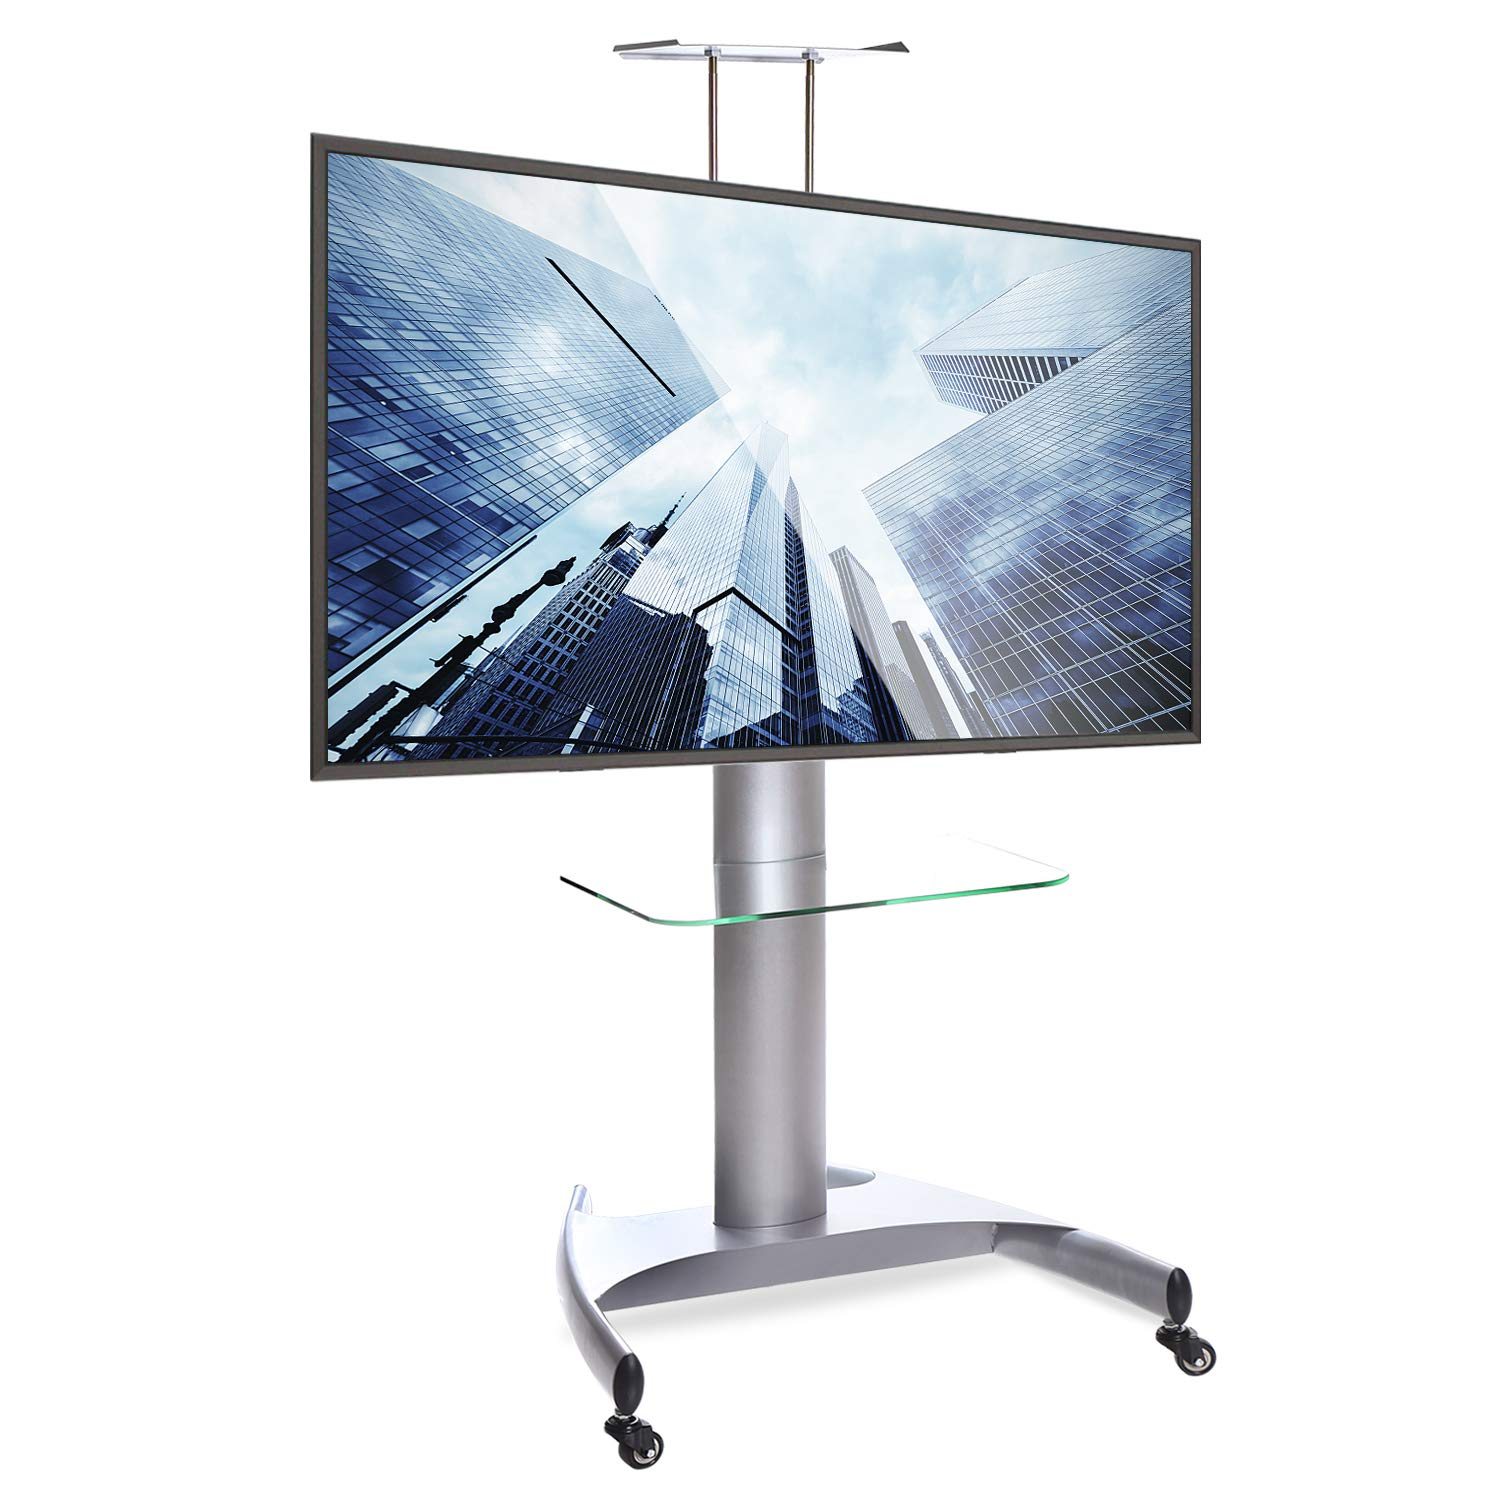 ABCCANOPY Silver TV Cart Rolling Trolley Mount TV Stands w/Wheels and Adjustable Shelf for 32-65 Inch LED LCD OLED Flat Screen, Plasma TVs TV & Monitor (TV Stand S T001-2)¡